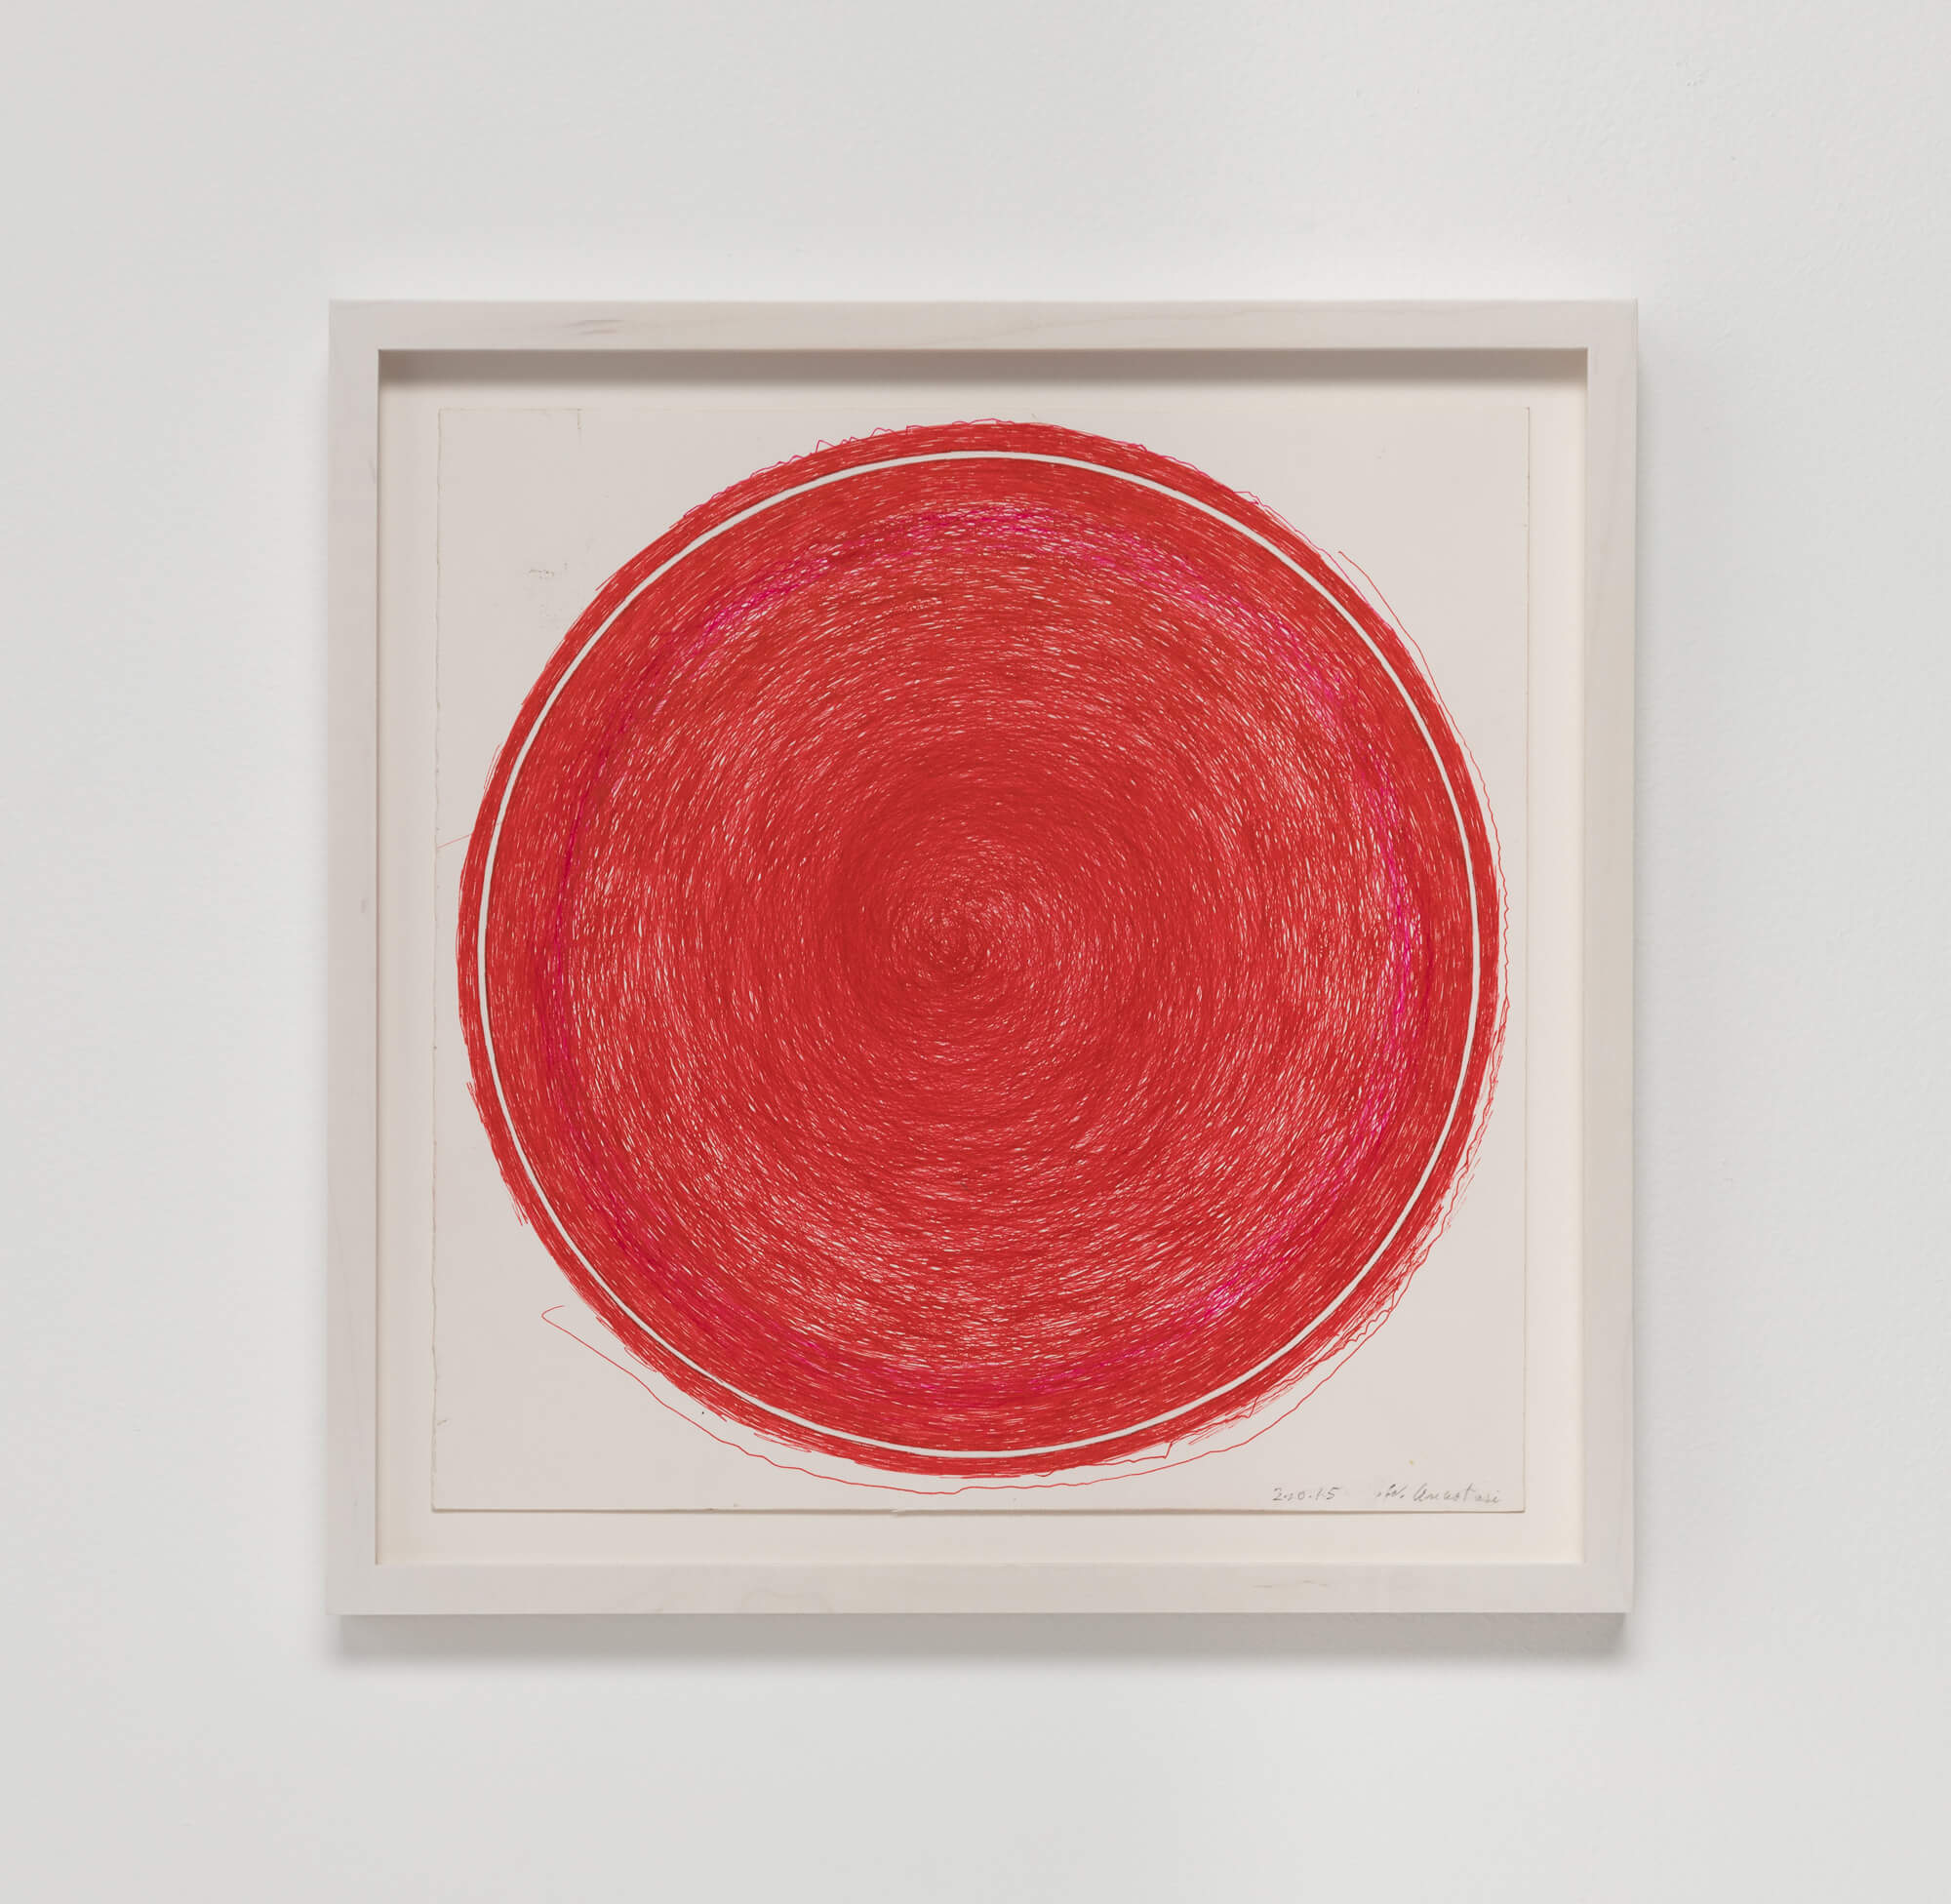 Anastasi, Untitled (Red Circle), 2015 (WA 15.001) A